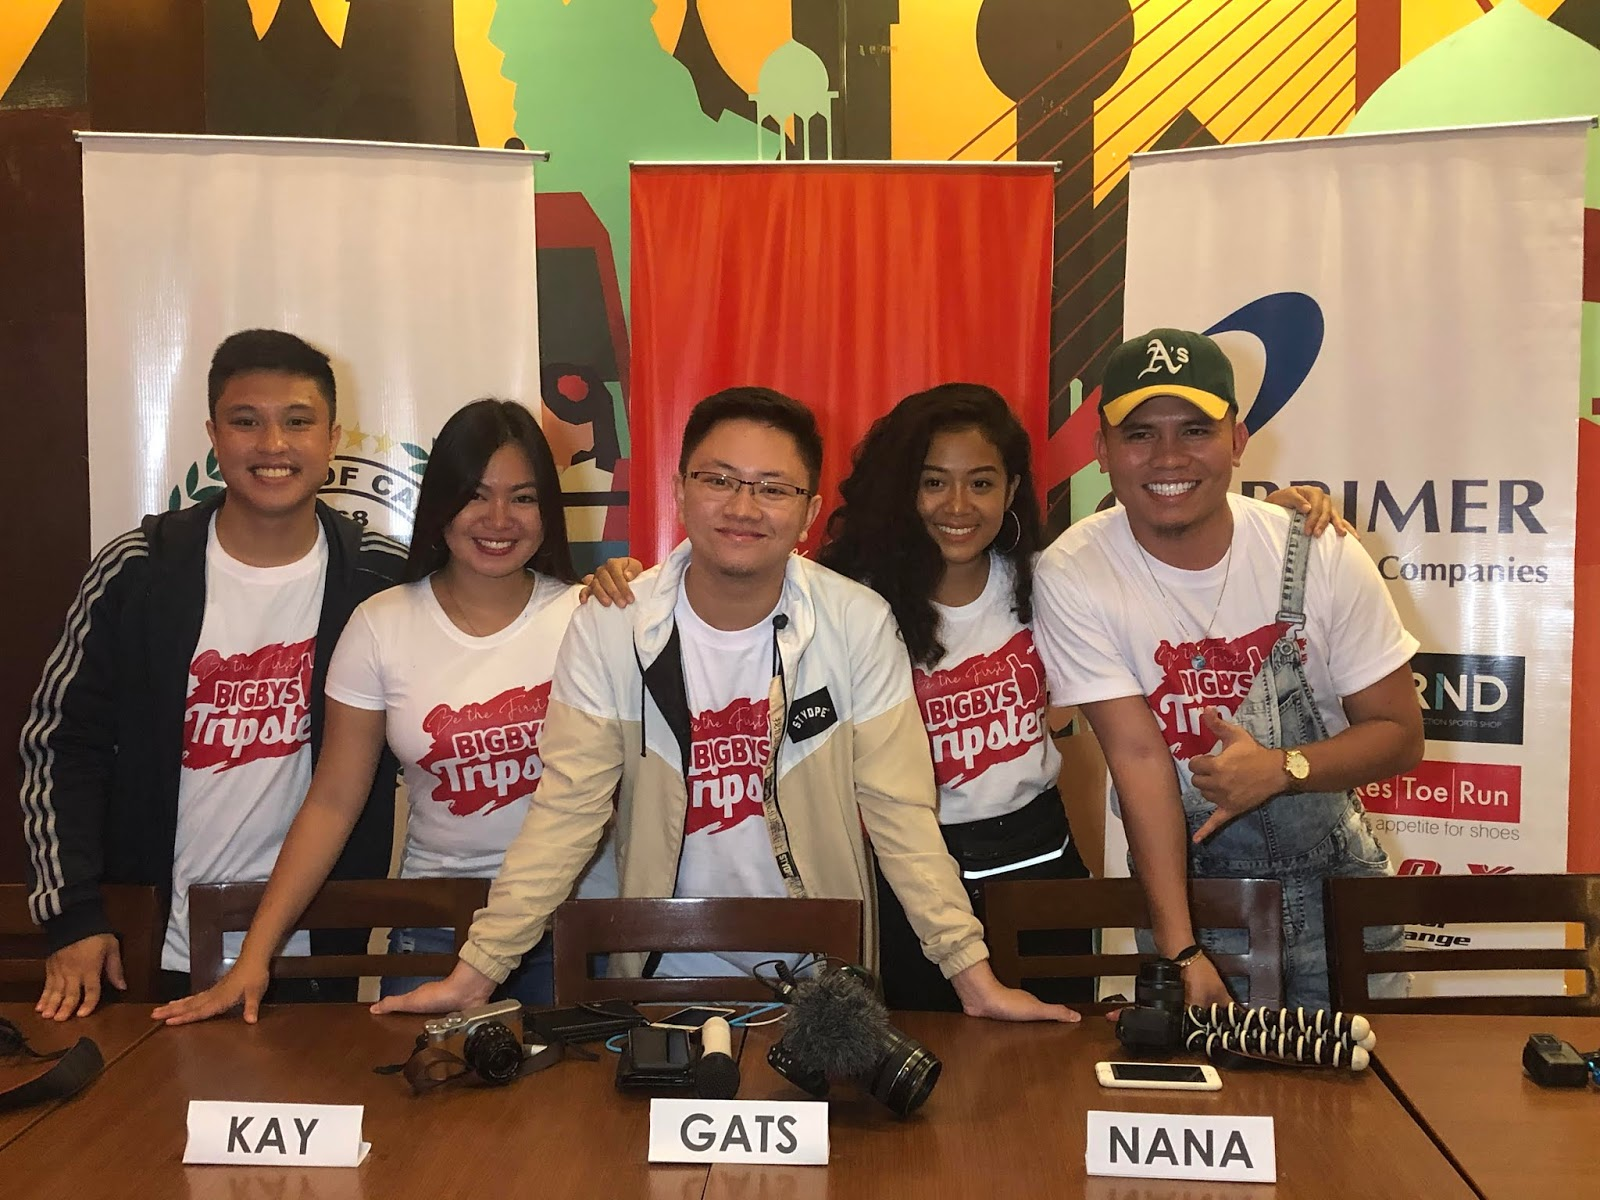 Meet the First Bigby's Tripster Top 5 Finalists